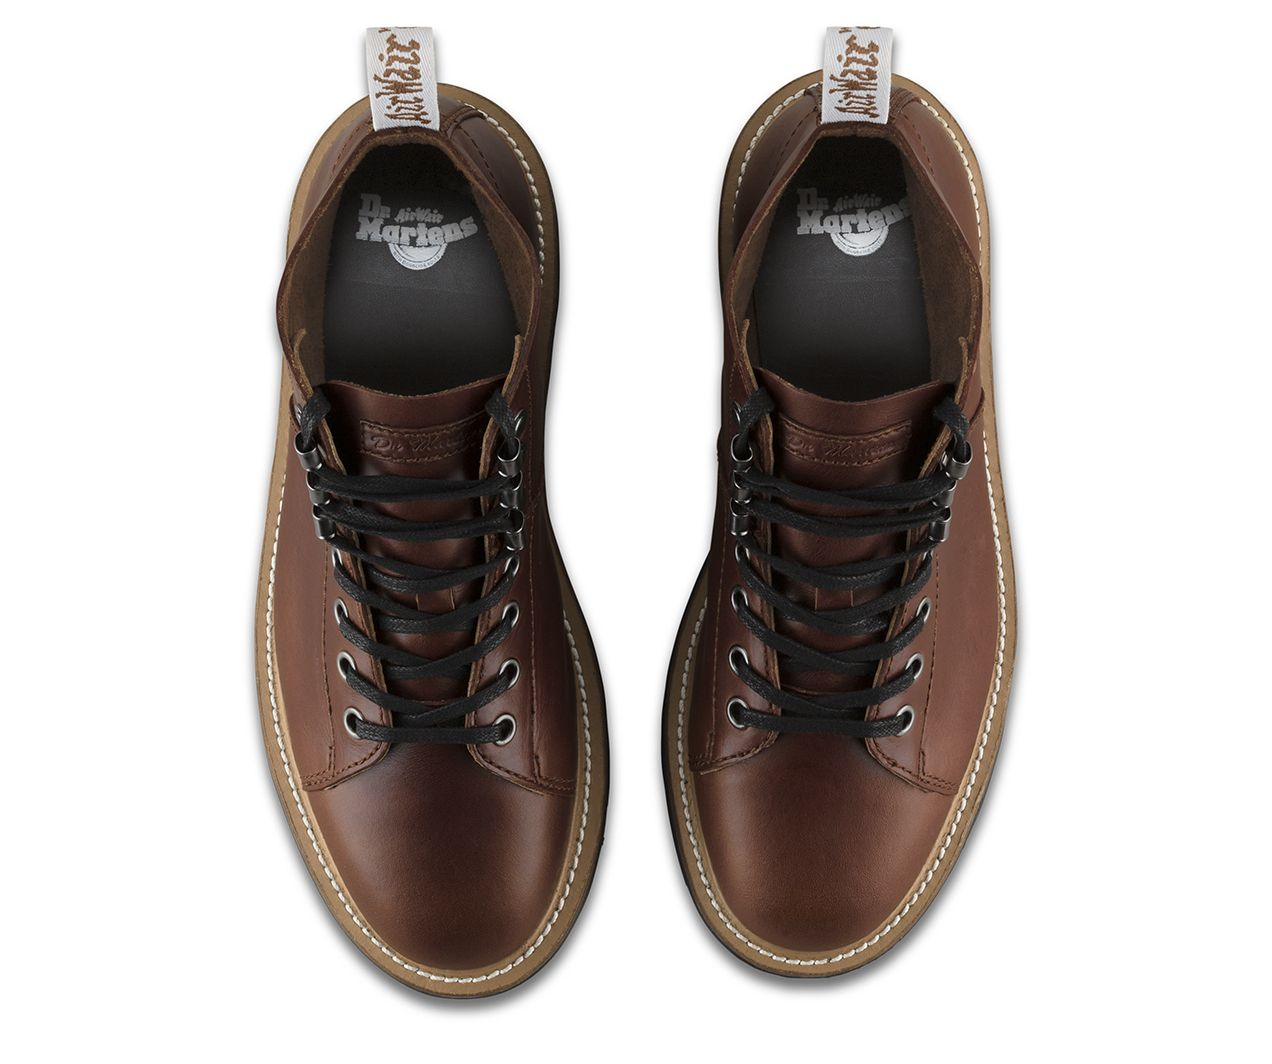 The Lesley Boot takes the classic Dr. Martens 7-eye boot silhouette, and makes it clean, feminine and modern. A lightweight, contrast sole, a subtle wedge heel and three hiking-inspired tunnel loops. Made with premium Analine leather, this elegant boot serves up classic Doc's DNA, like stitching and a heel loop — but in white.